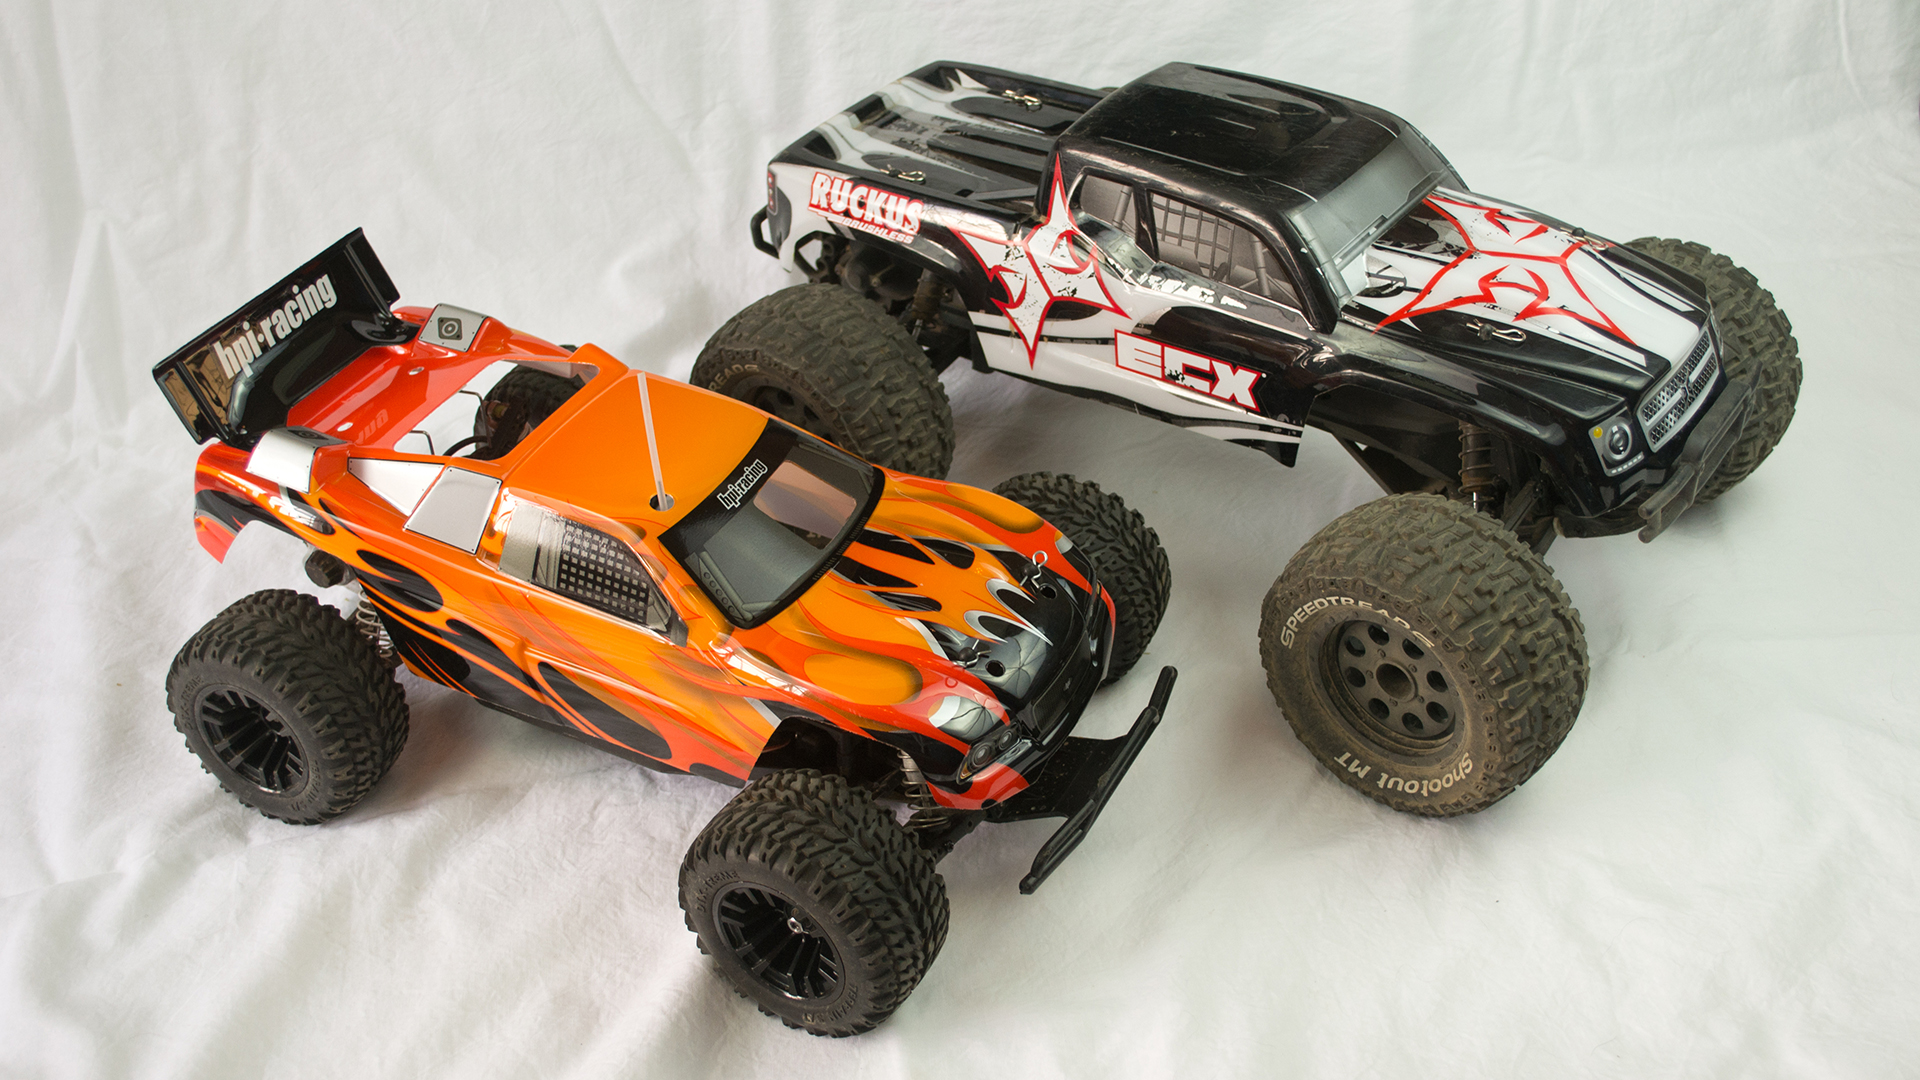 How To Get Into Hobby Rc Upgrading Your Car And Batteries Tested